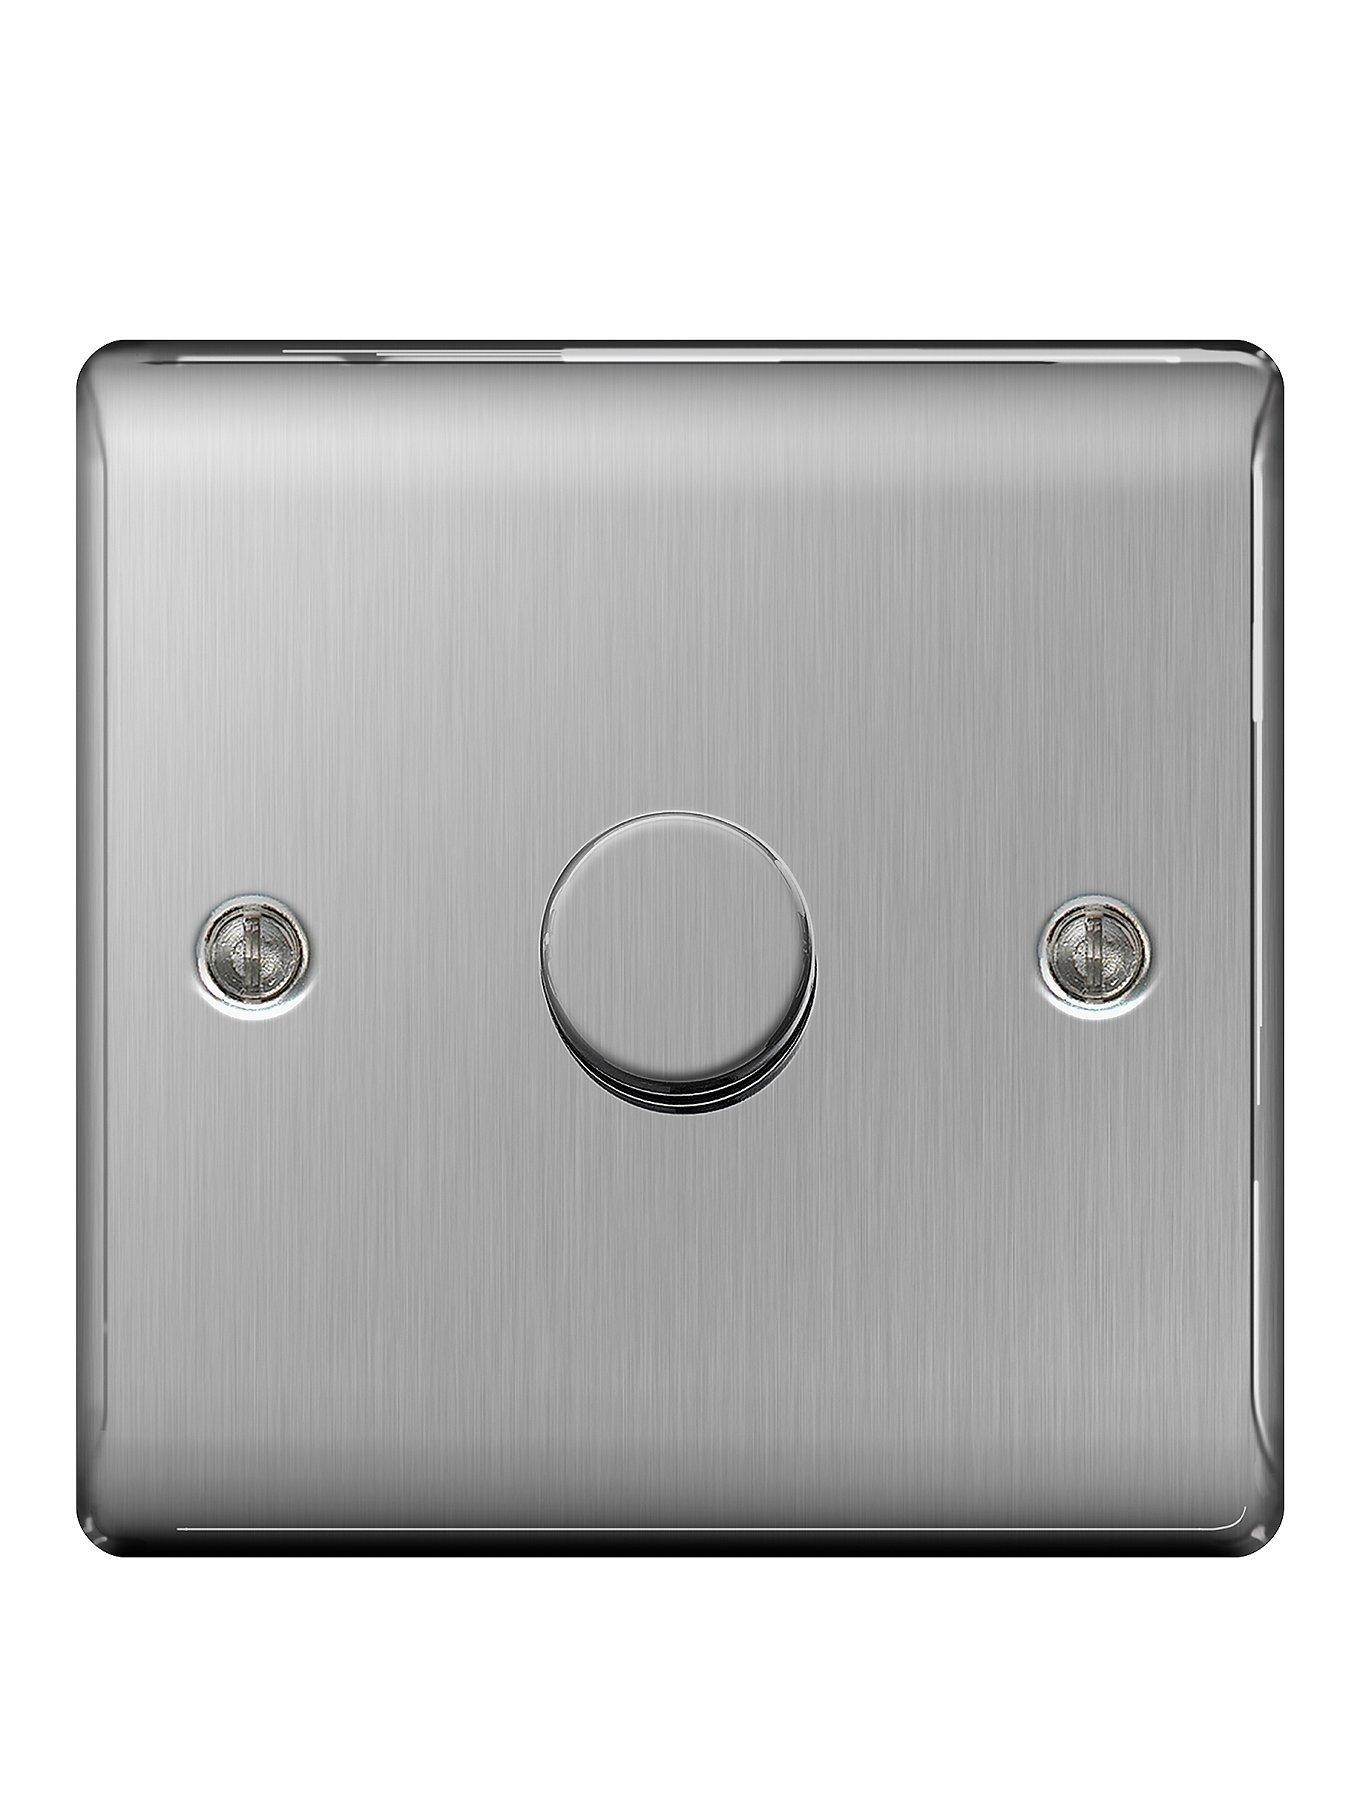 Compare cheap offers & prices of British General Brushed Steel 400 Watt 1G Dimmer manufactured by British General